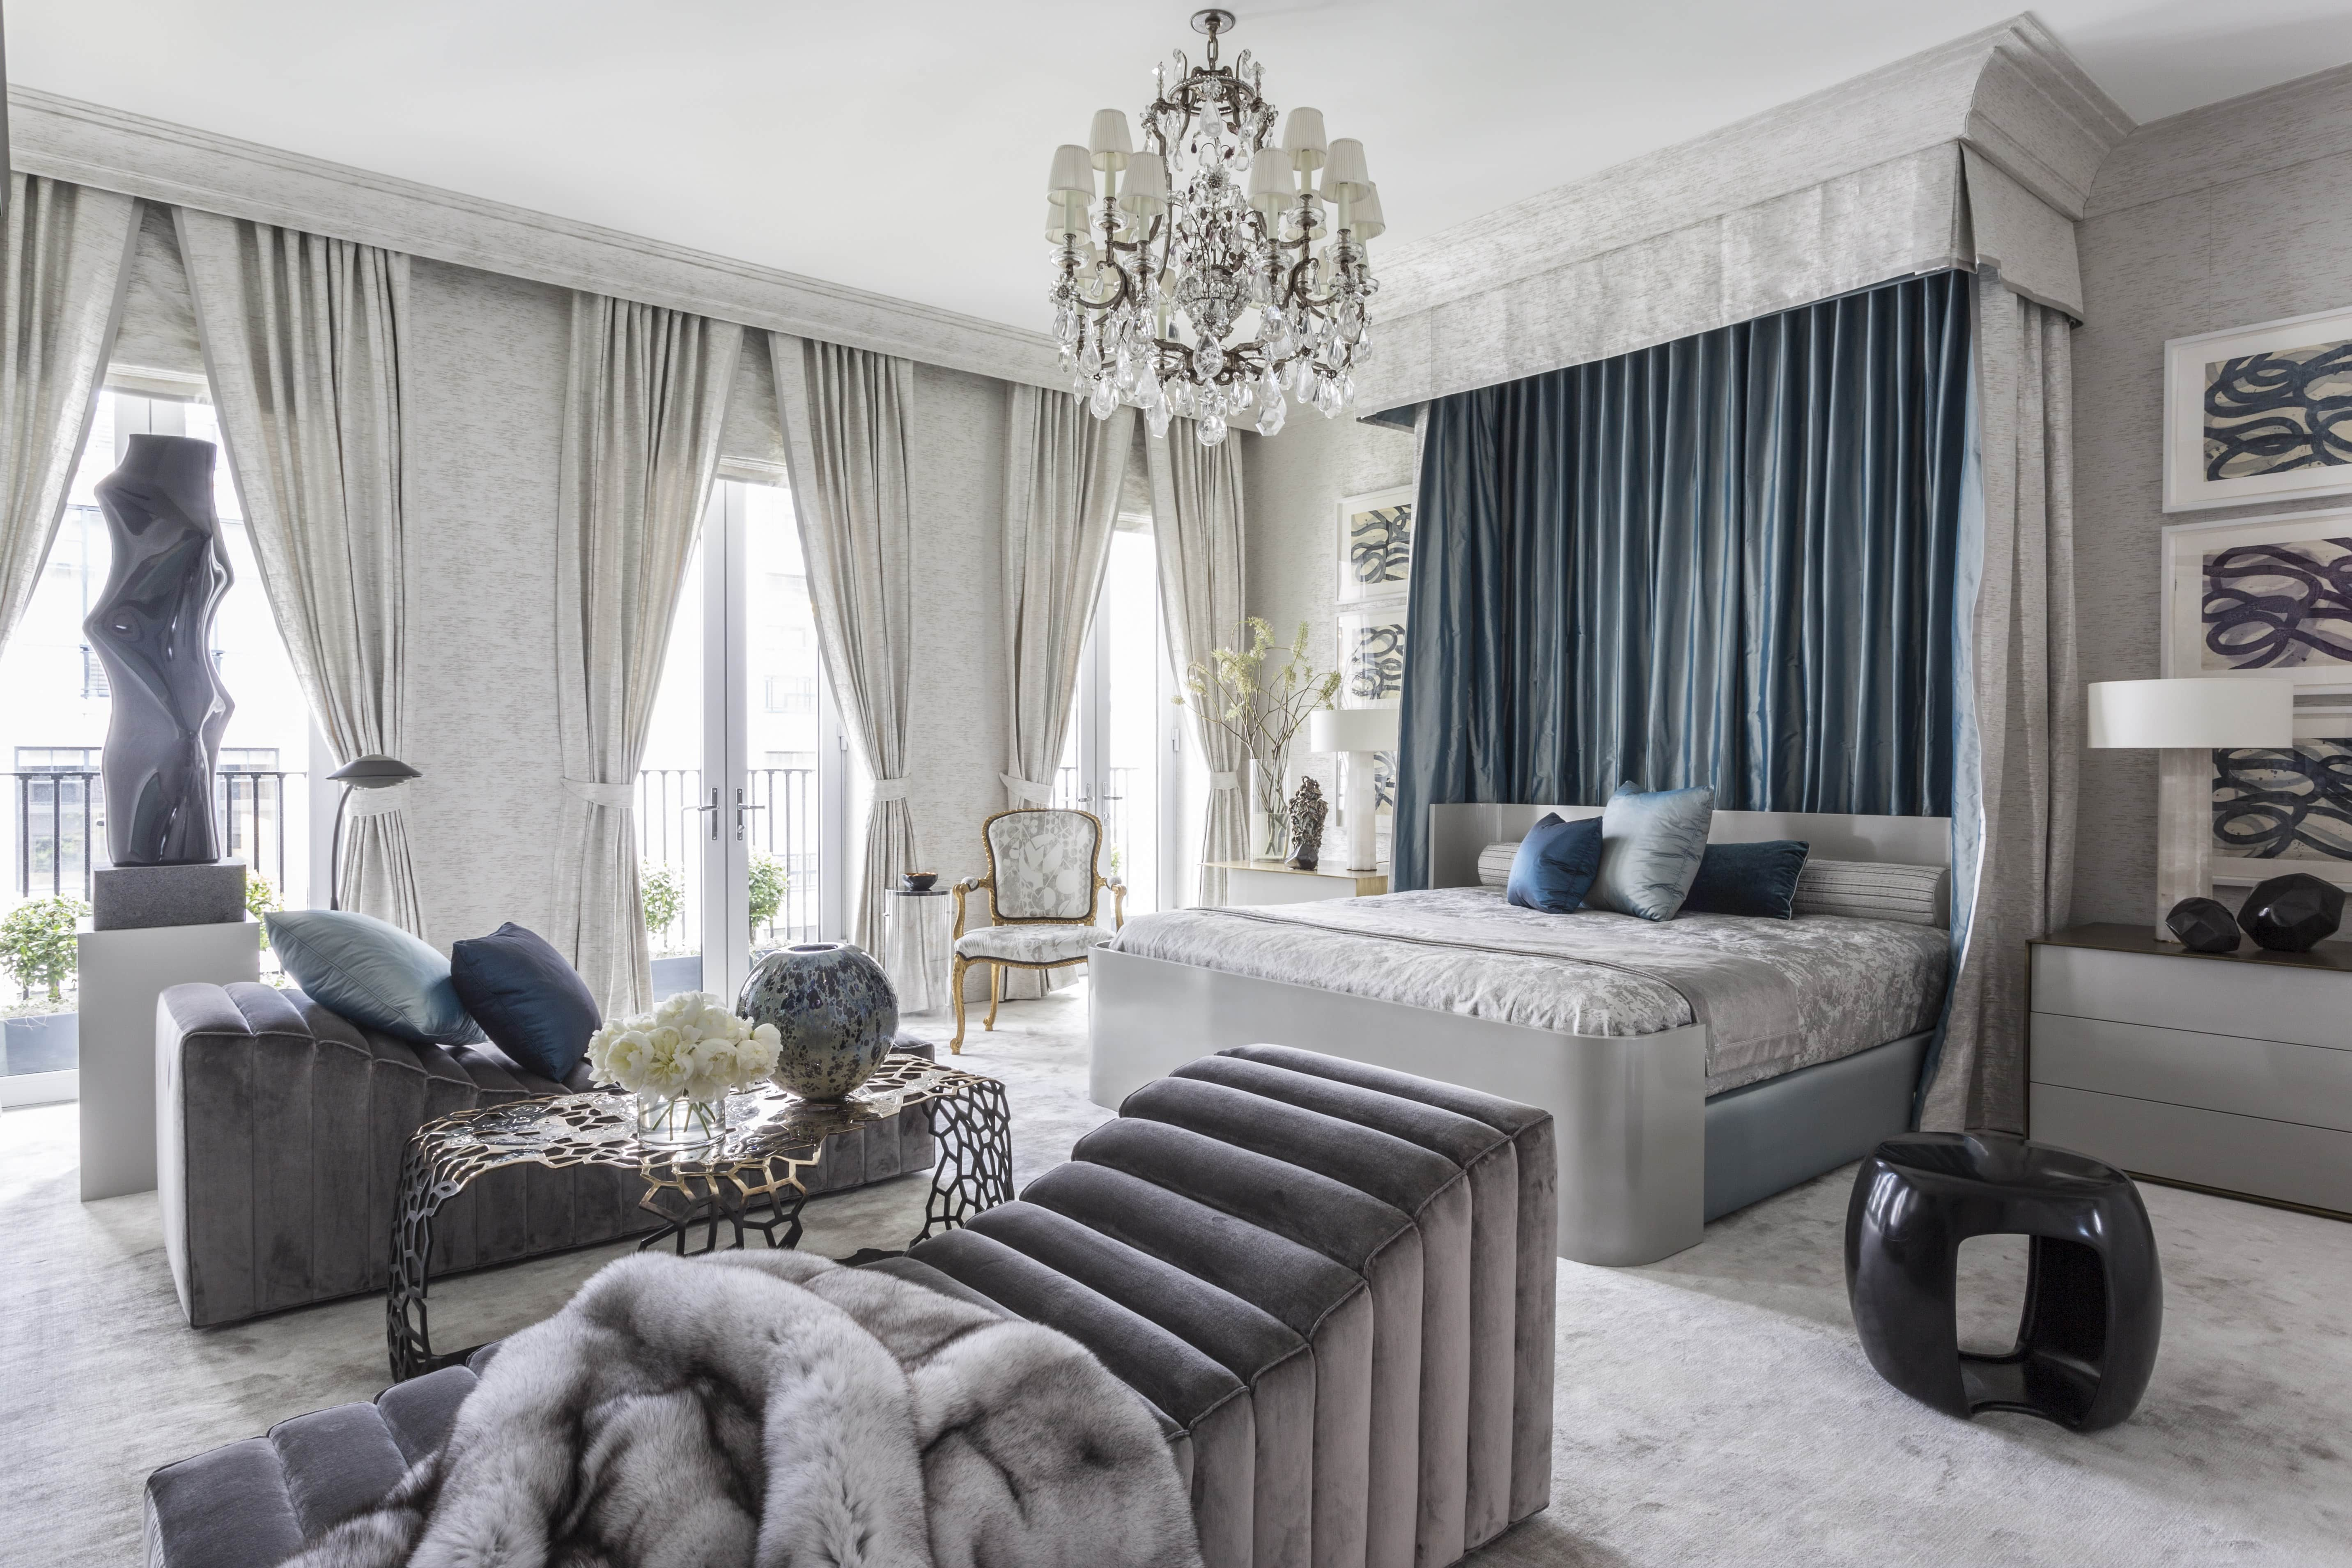 Gray-rug-blue-bedroom-designed-by-Jamie-Drake-Caleb-Anderson-2016-Kips-Bay-Show-House-architectural-digest-june-2016.jpg